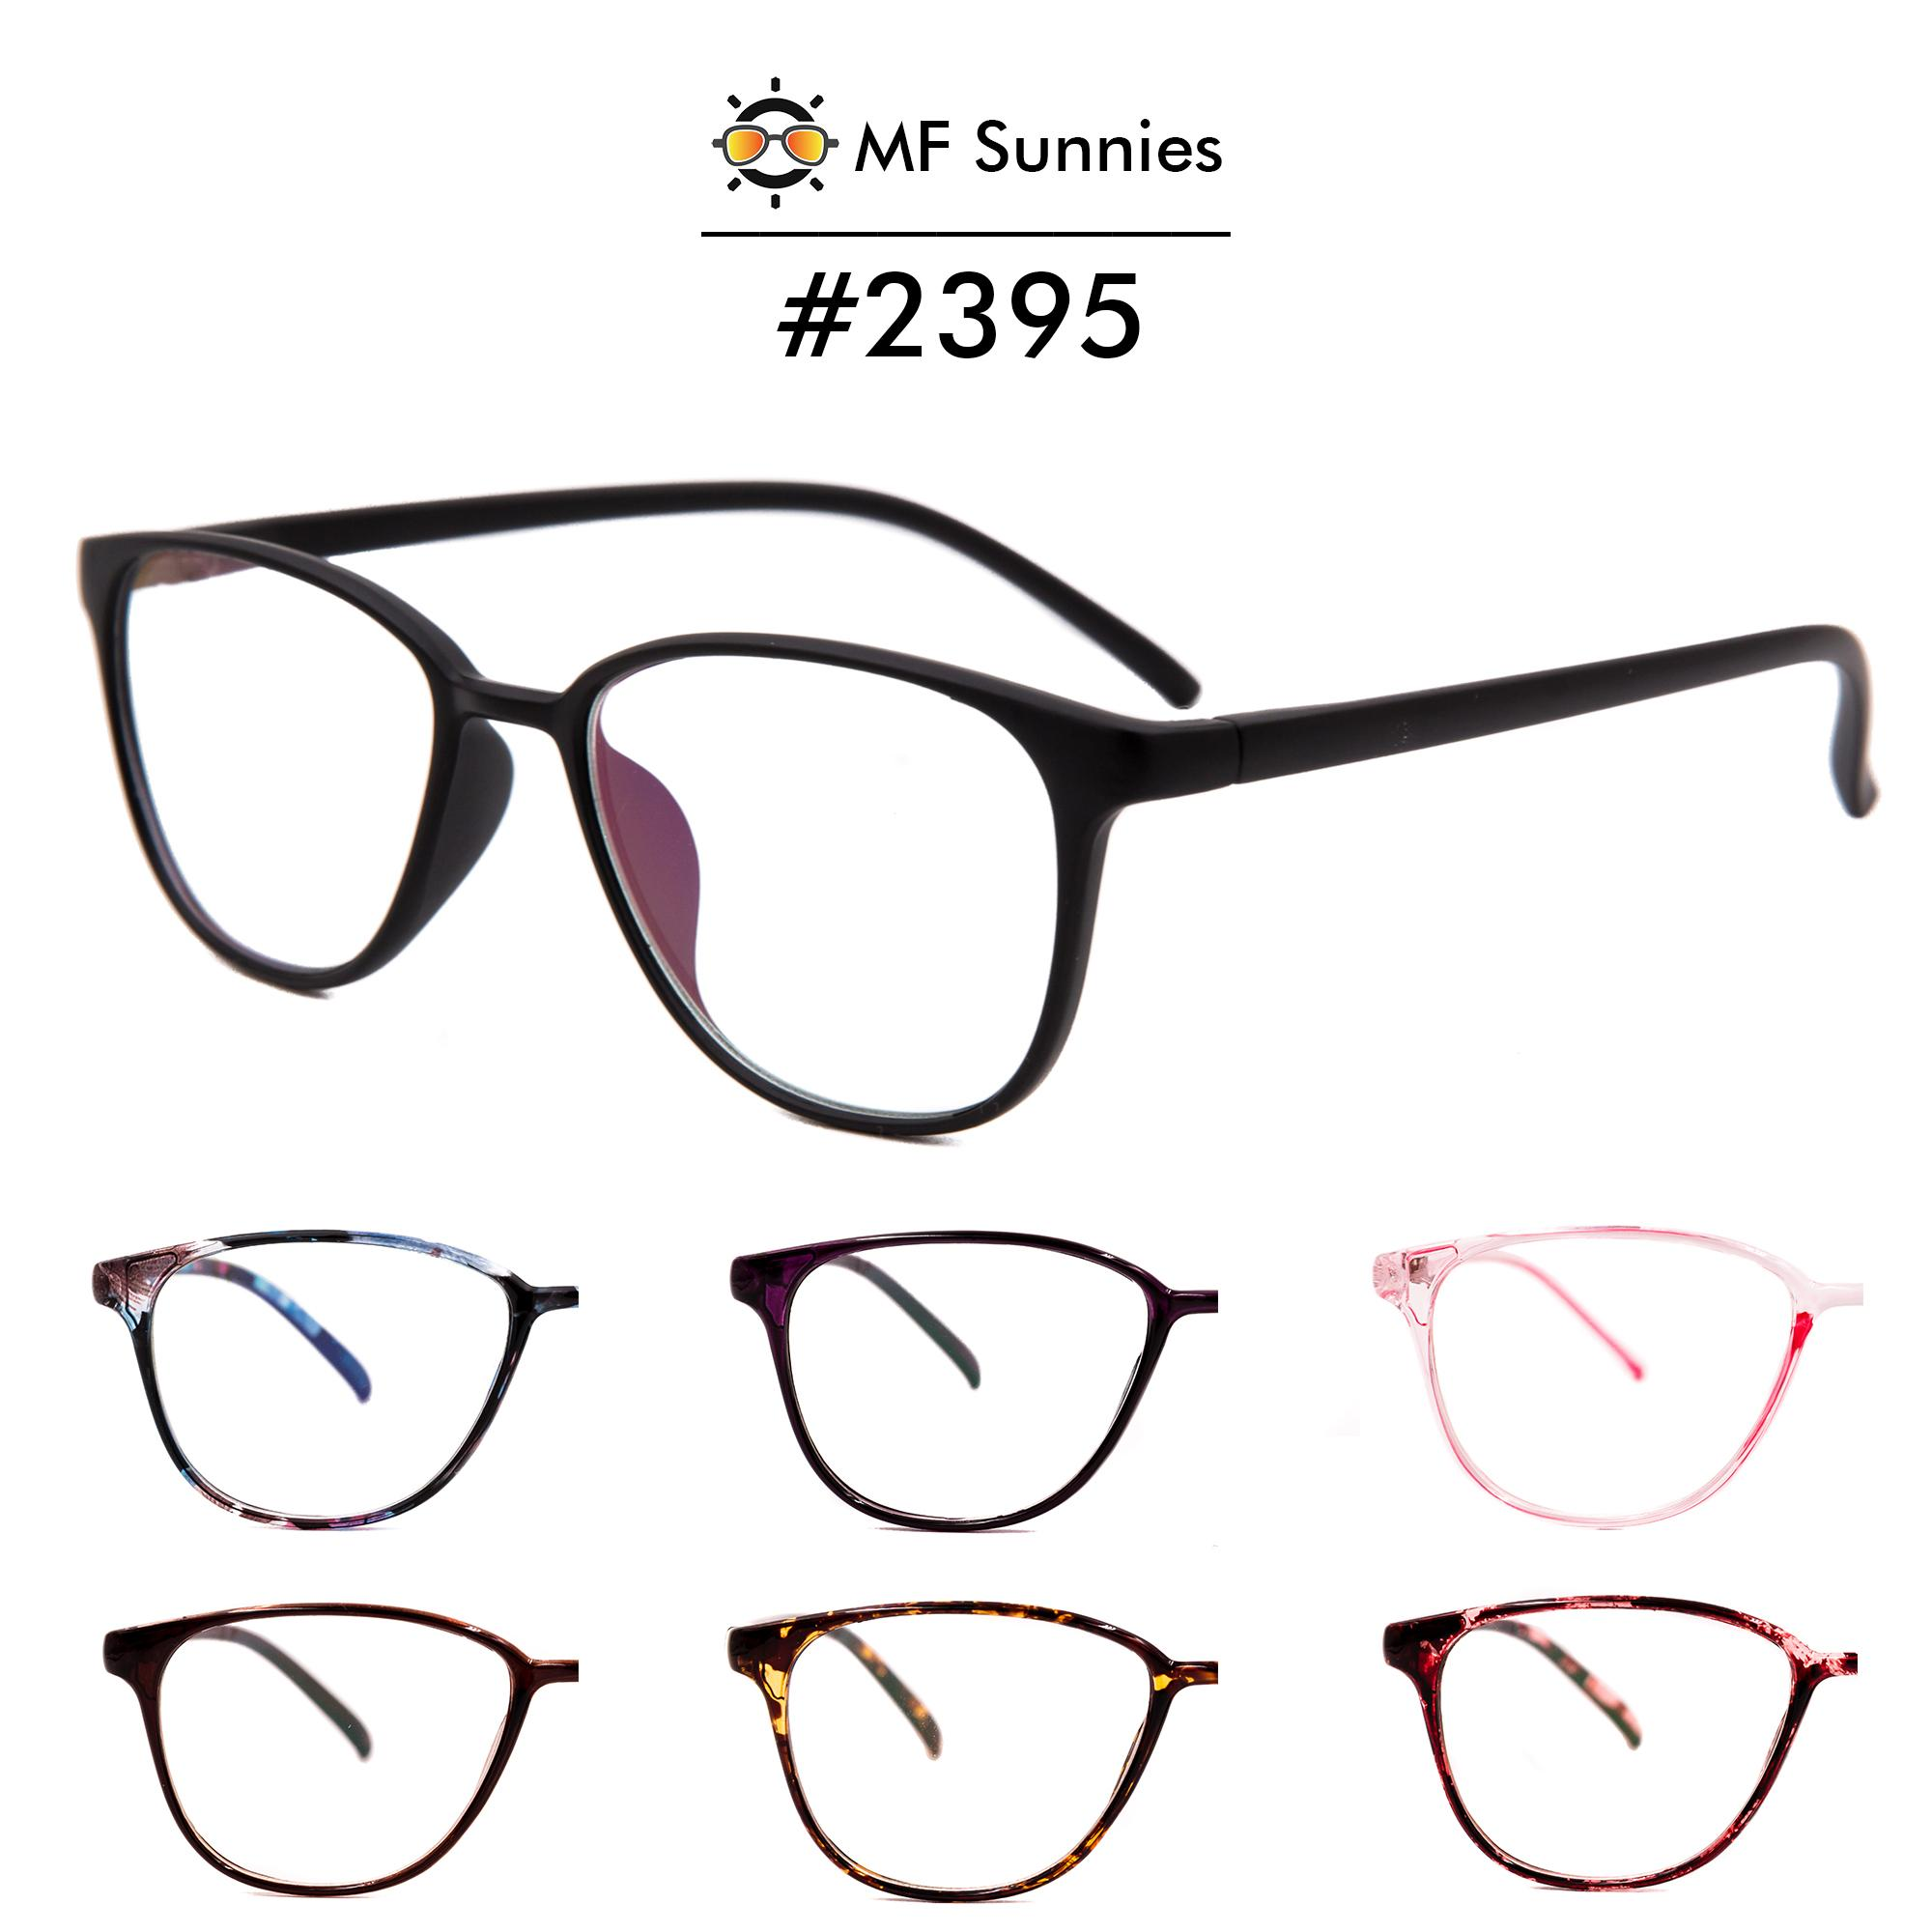 f1aeb2b45a MFSunnies Computer Anti Blue light Radiation Eyewear High quality frame  Premium Acetate material Metal Hinges